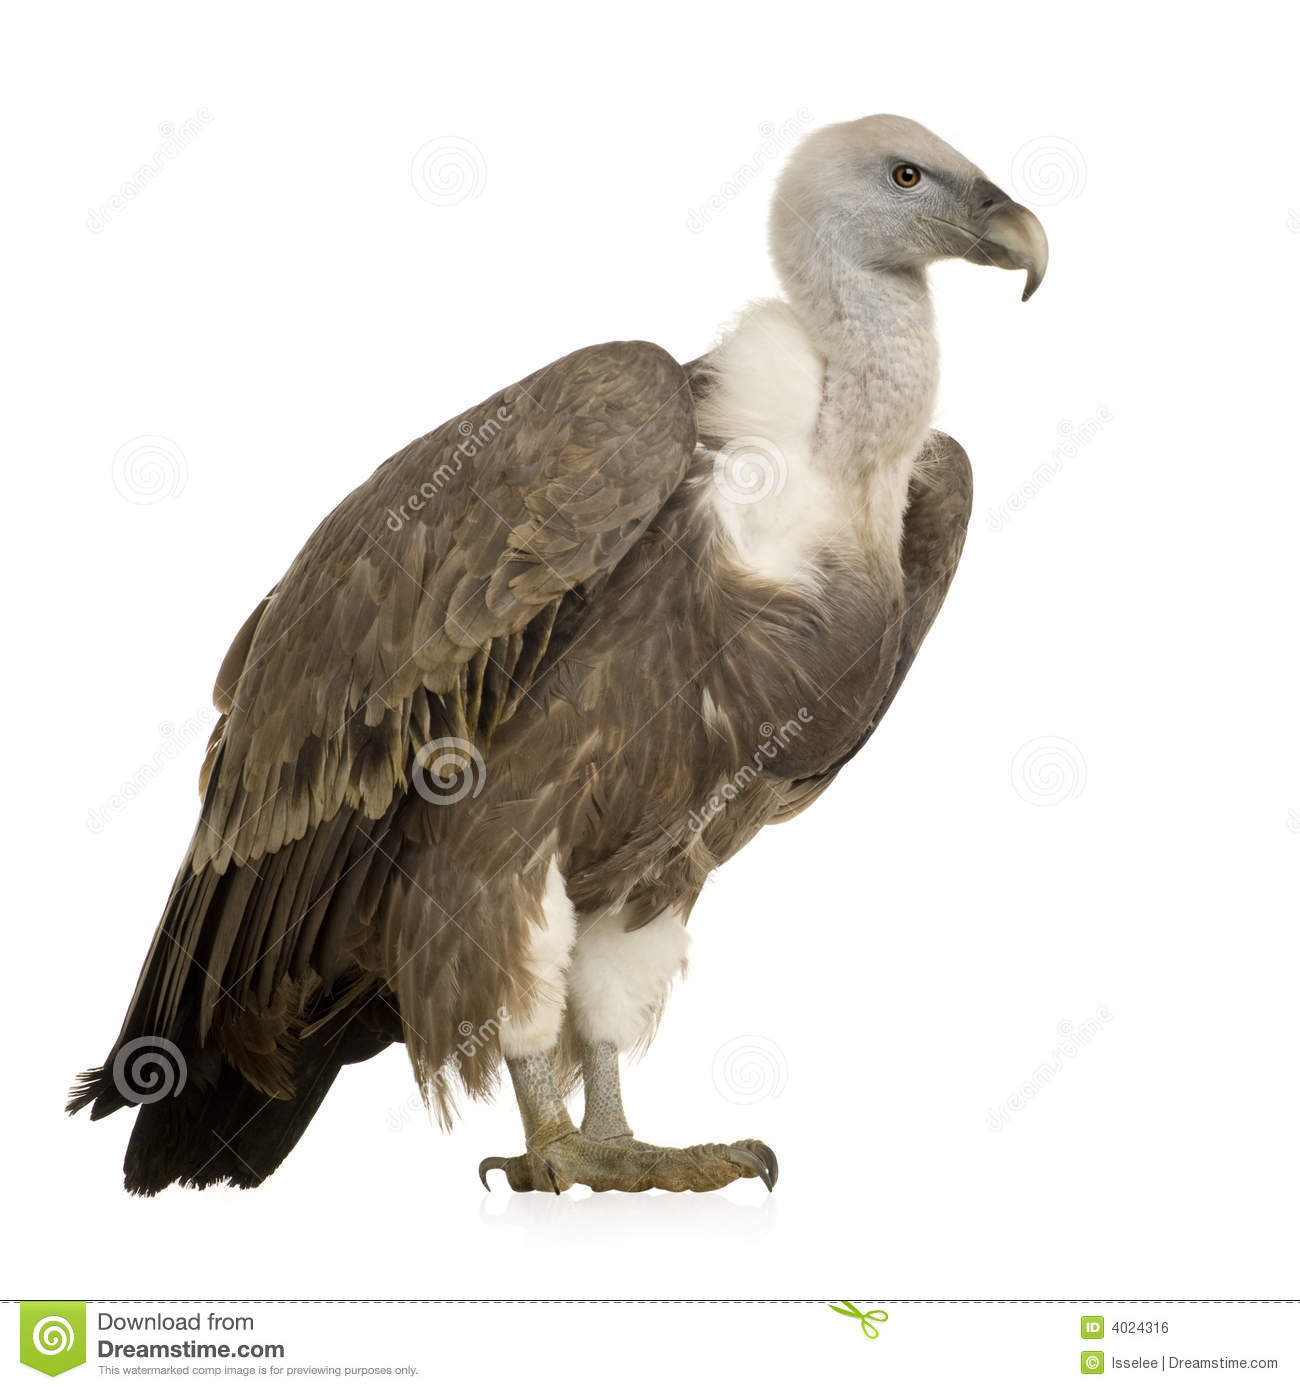 Griffon Vulture clipart #20, Download drawings